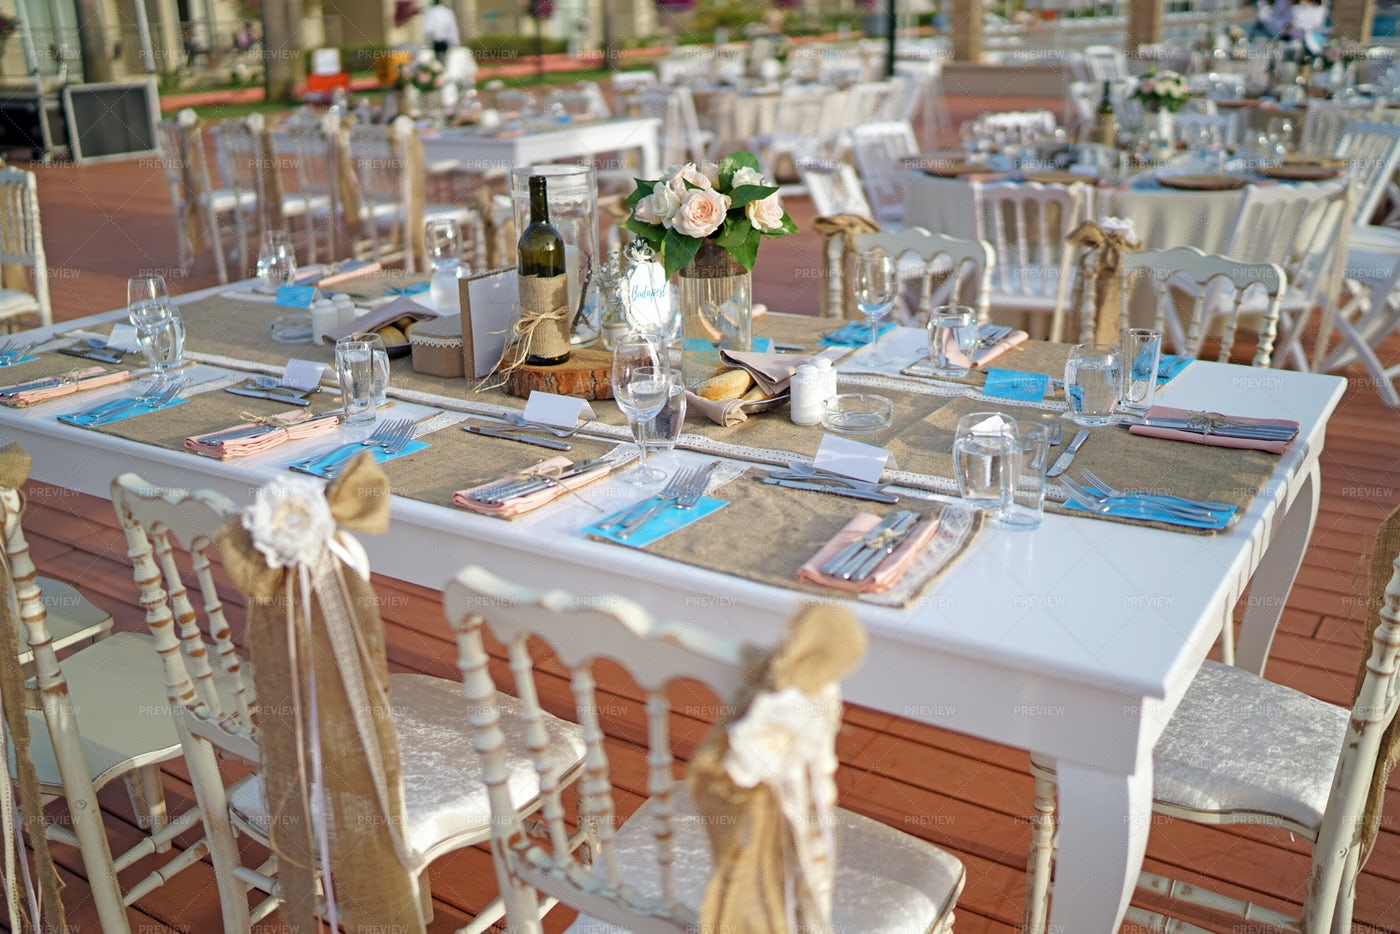 Decorated Wedding Tables: Stock Photos